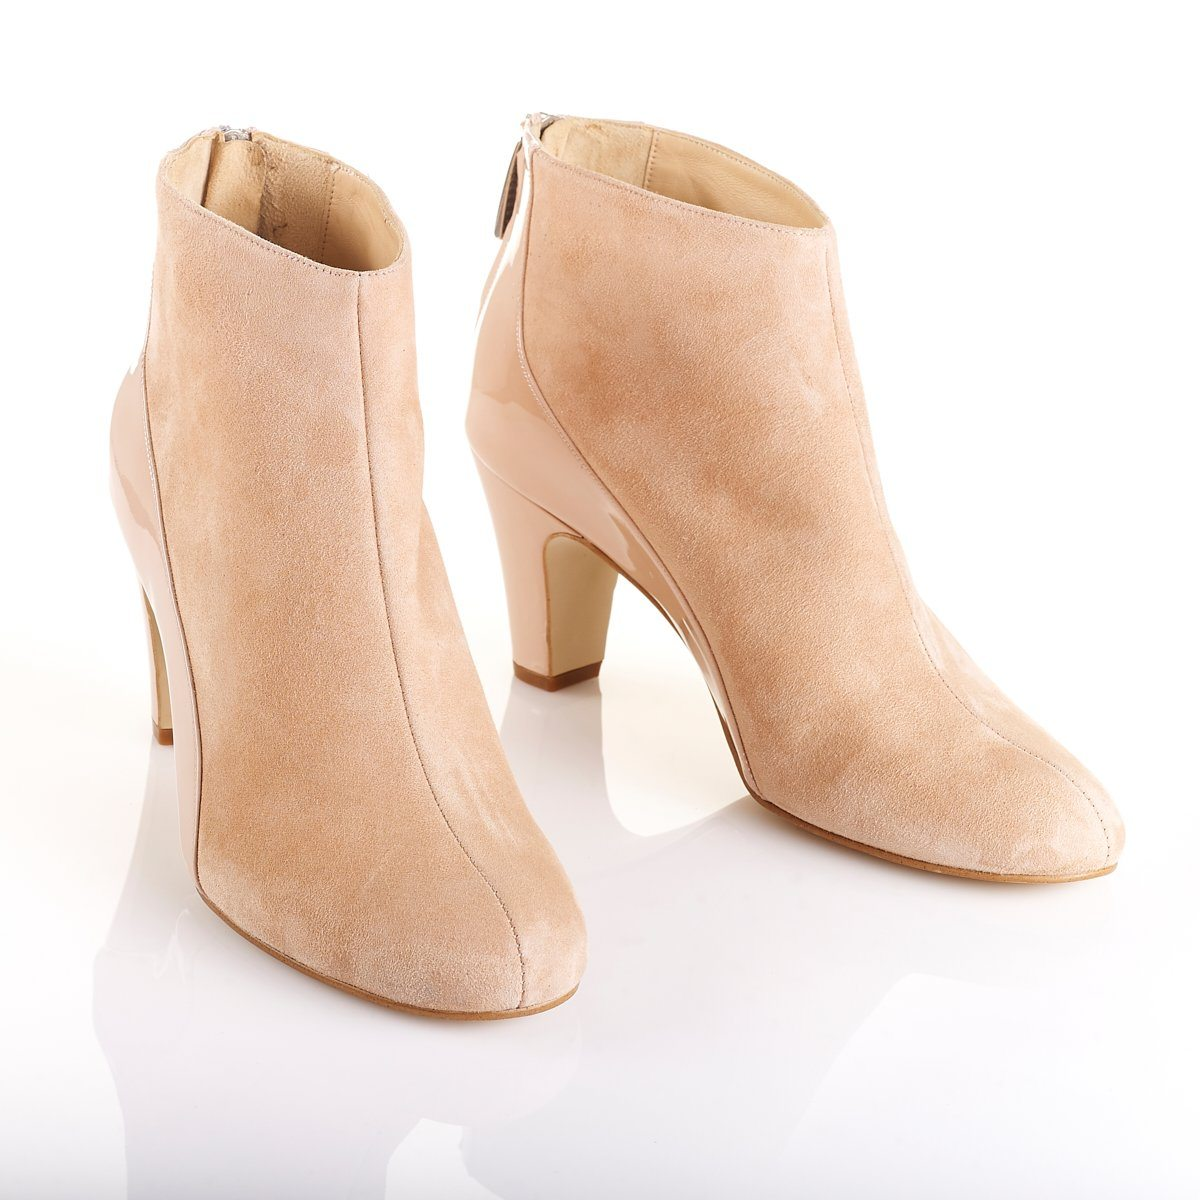 She.E.O - Luxury Blush Ankle Boots - Shoes by Shaherazad